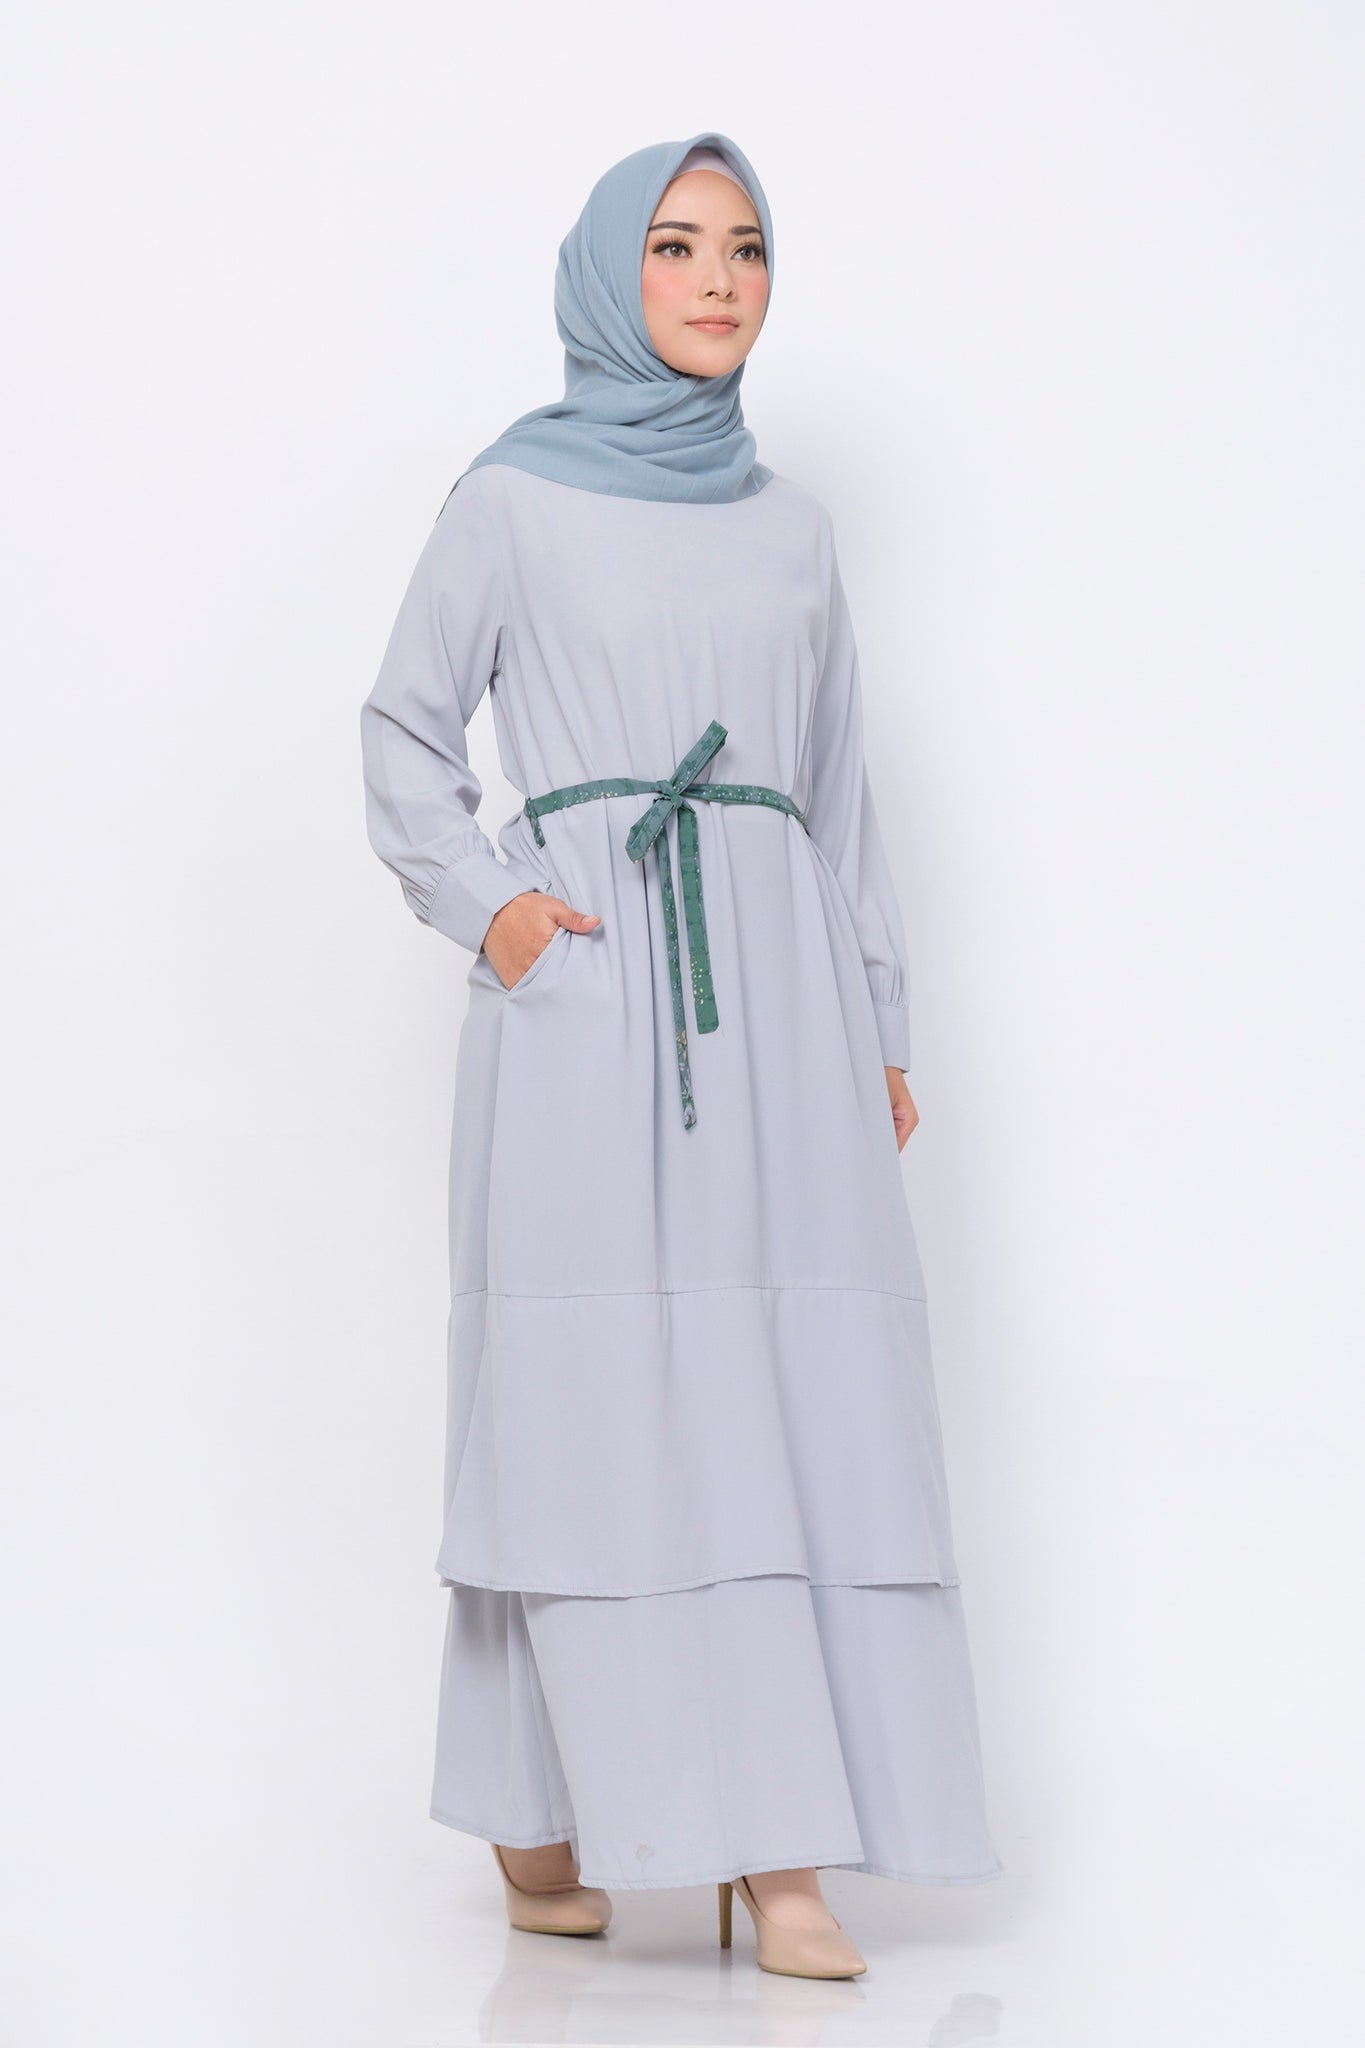 ZM - Kaici Grey Dress - Jelita Indonesia - Edisi Pulau Bangka